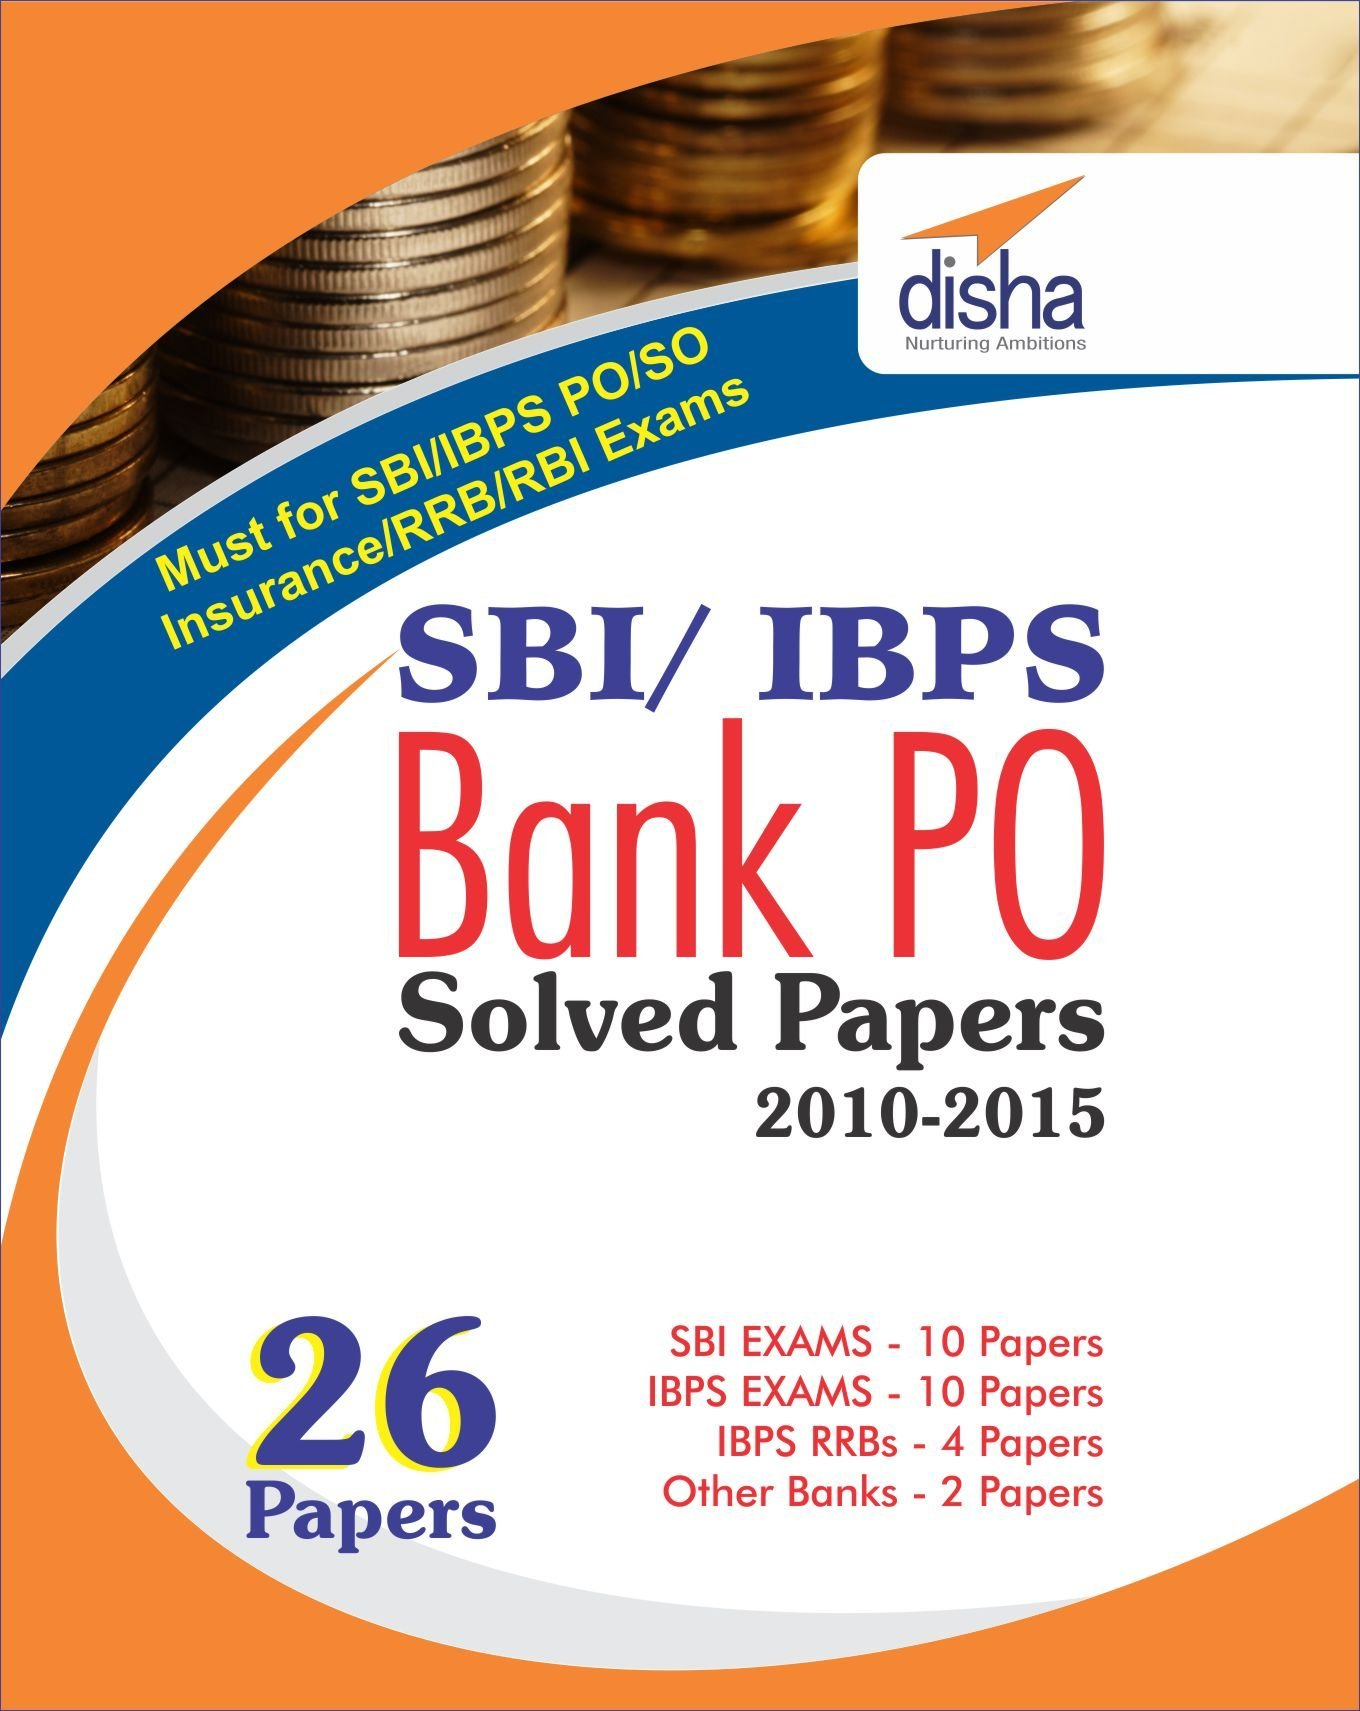 SBI & IBPS Bank PO Solved Papers By Disha Experts